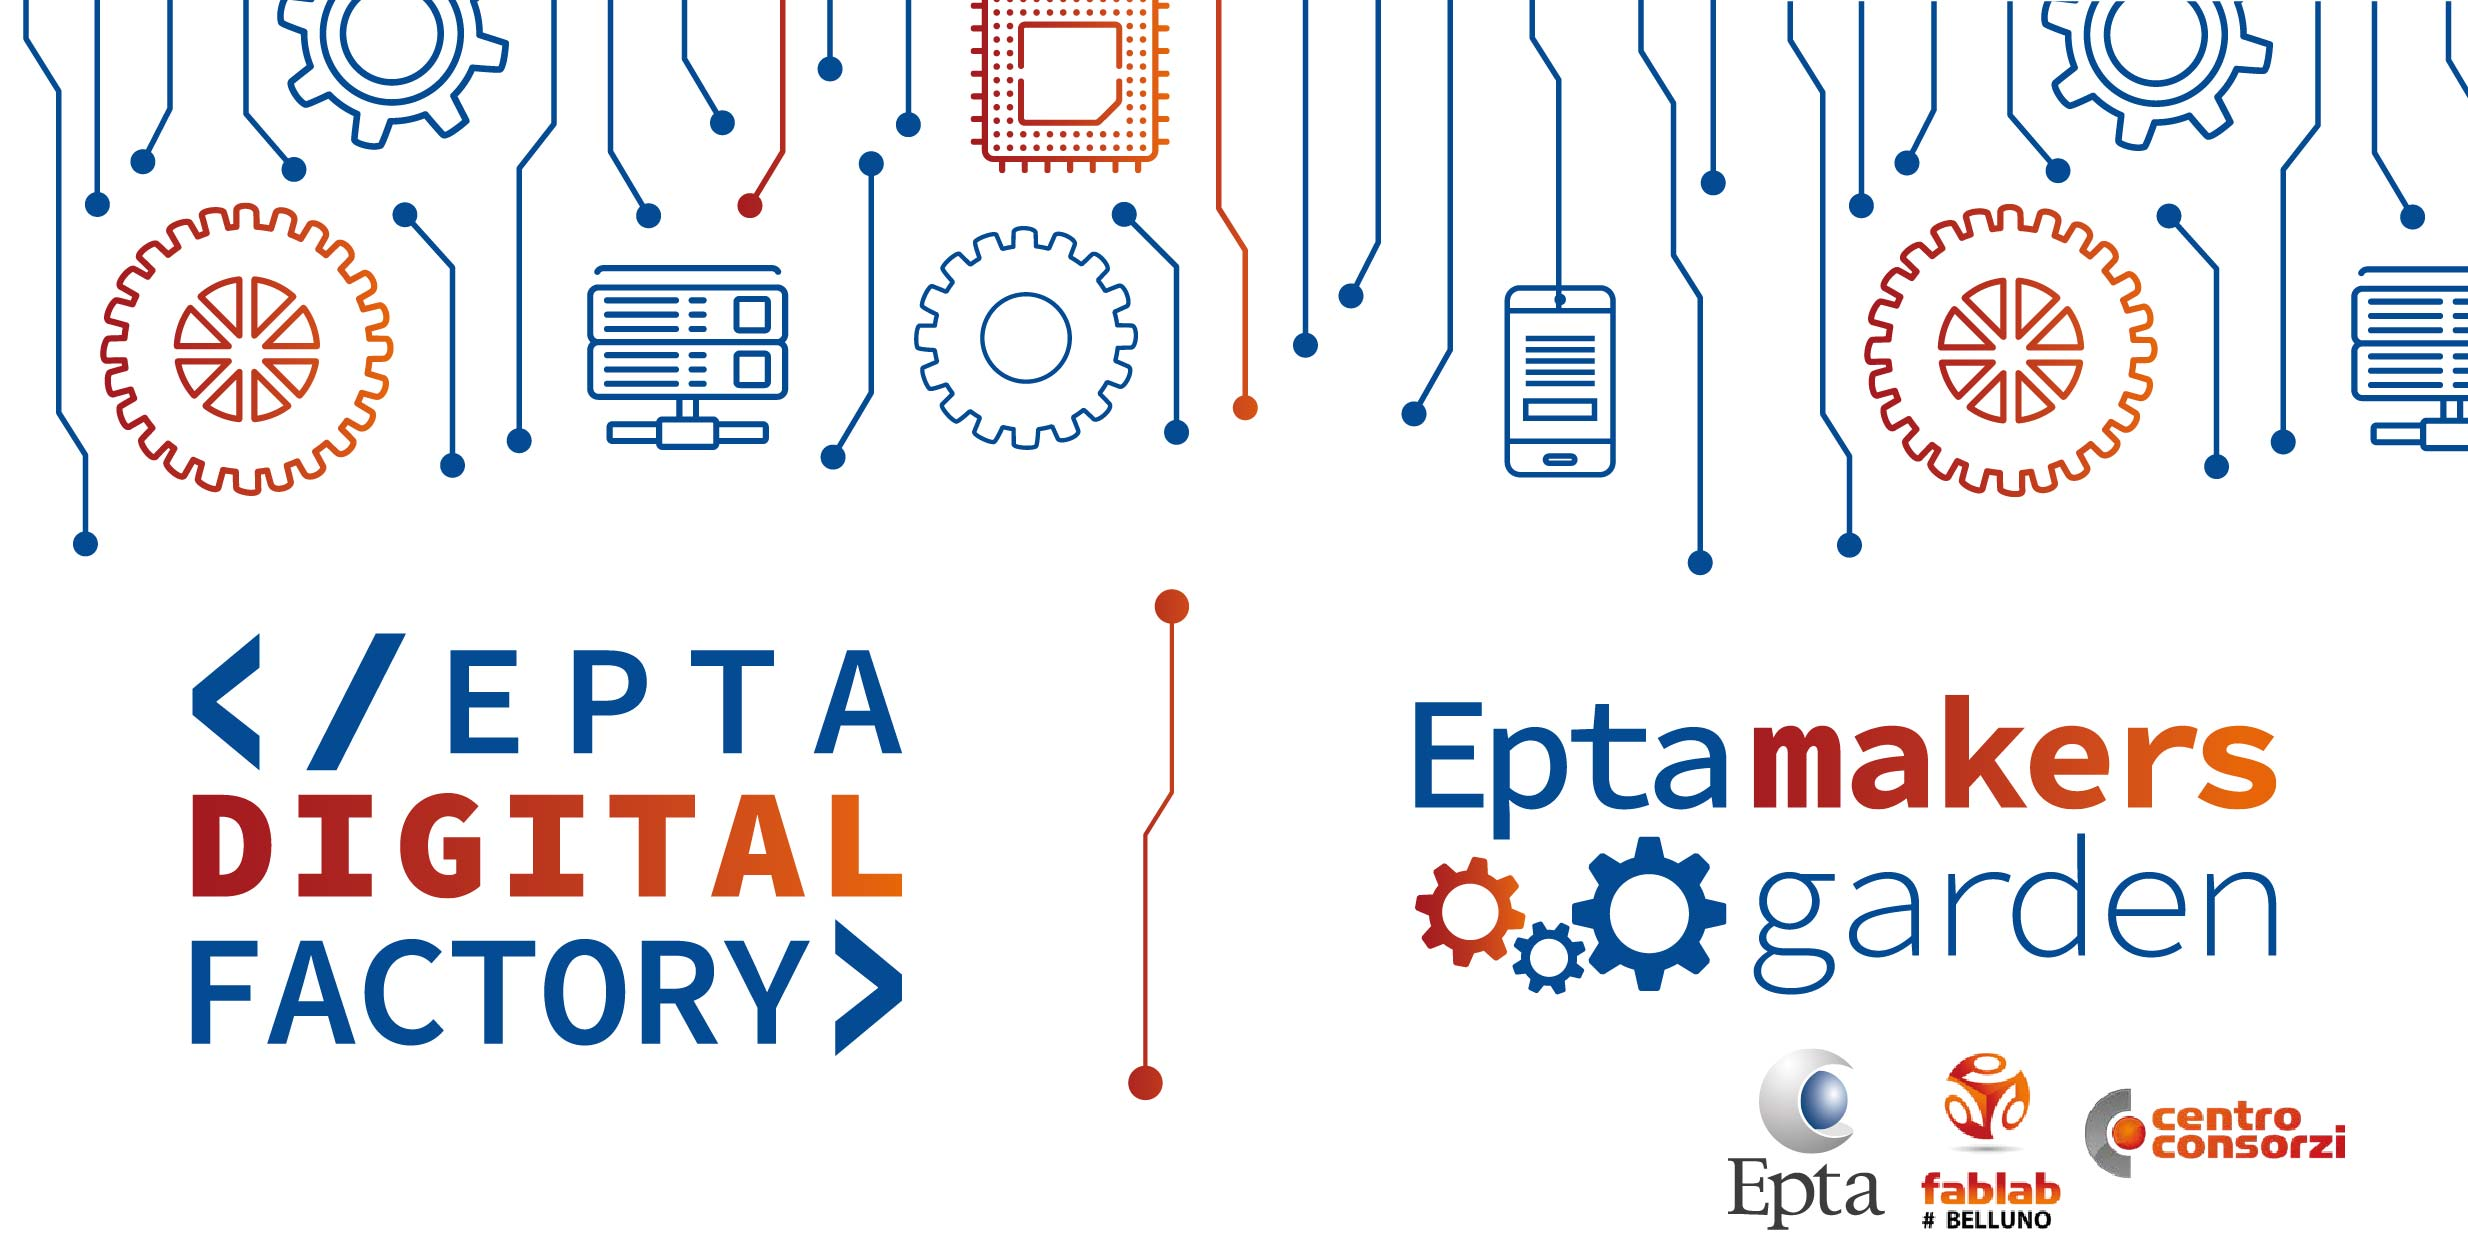 Epta makers garden: innovazione digitale